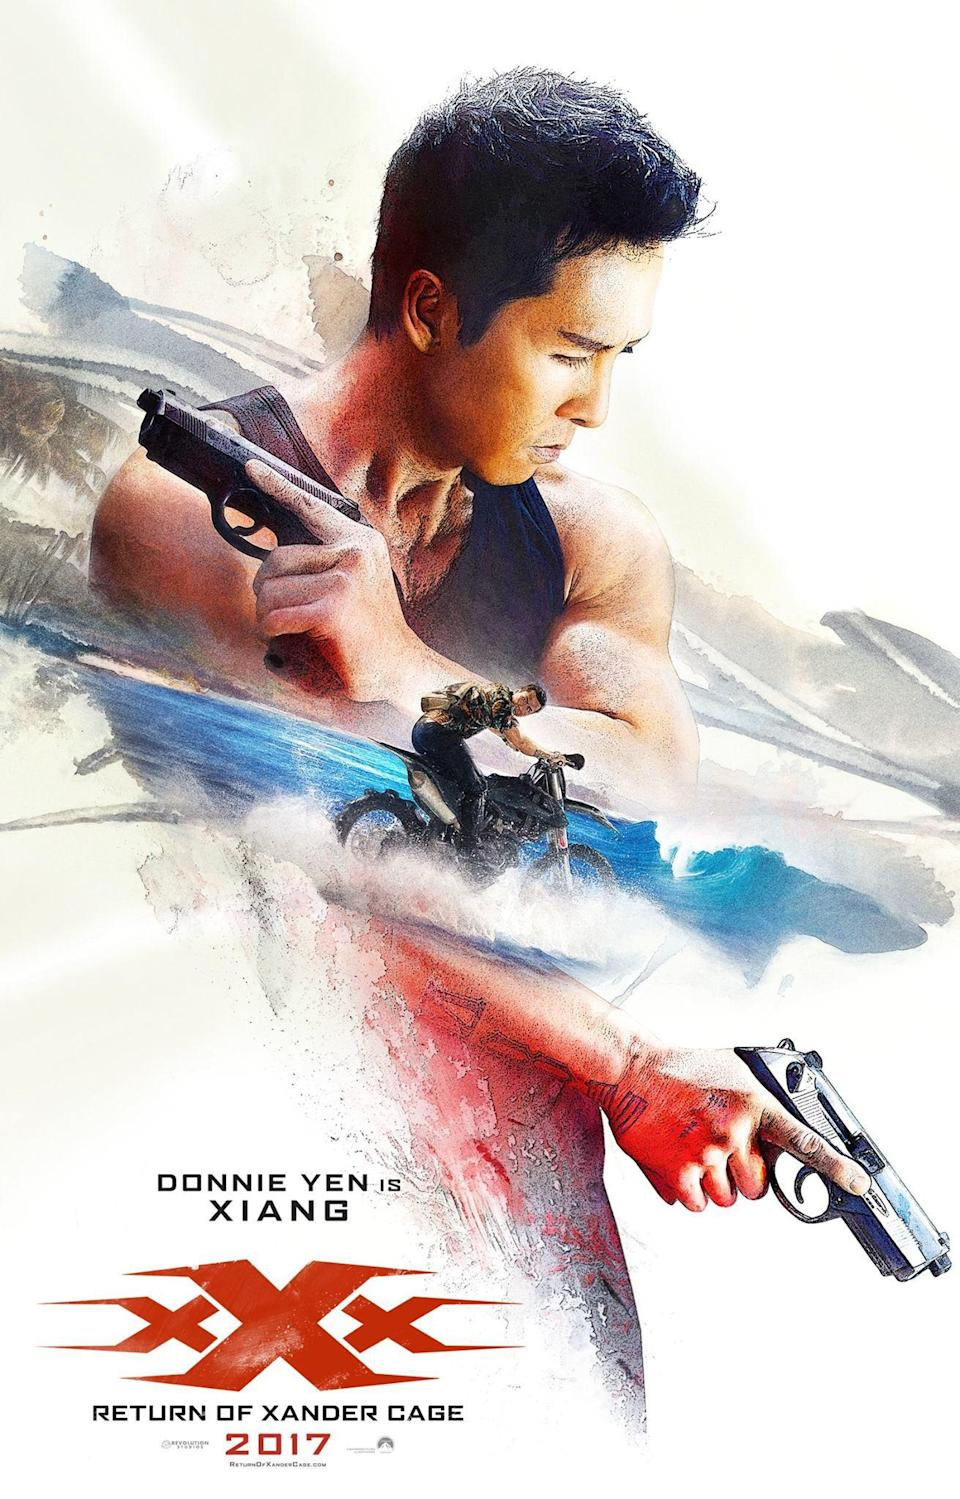 <p>Donnie Yen is Xiang – Credit: Paramount </p>